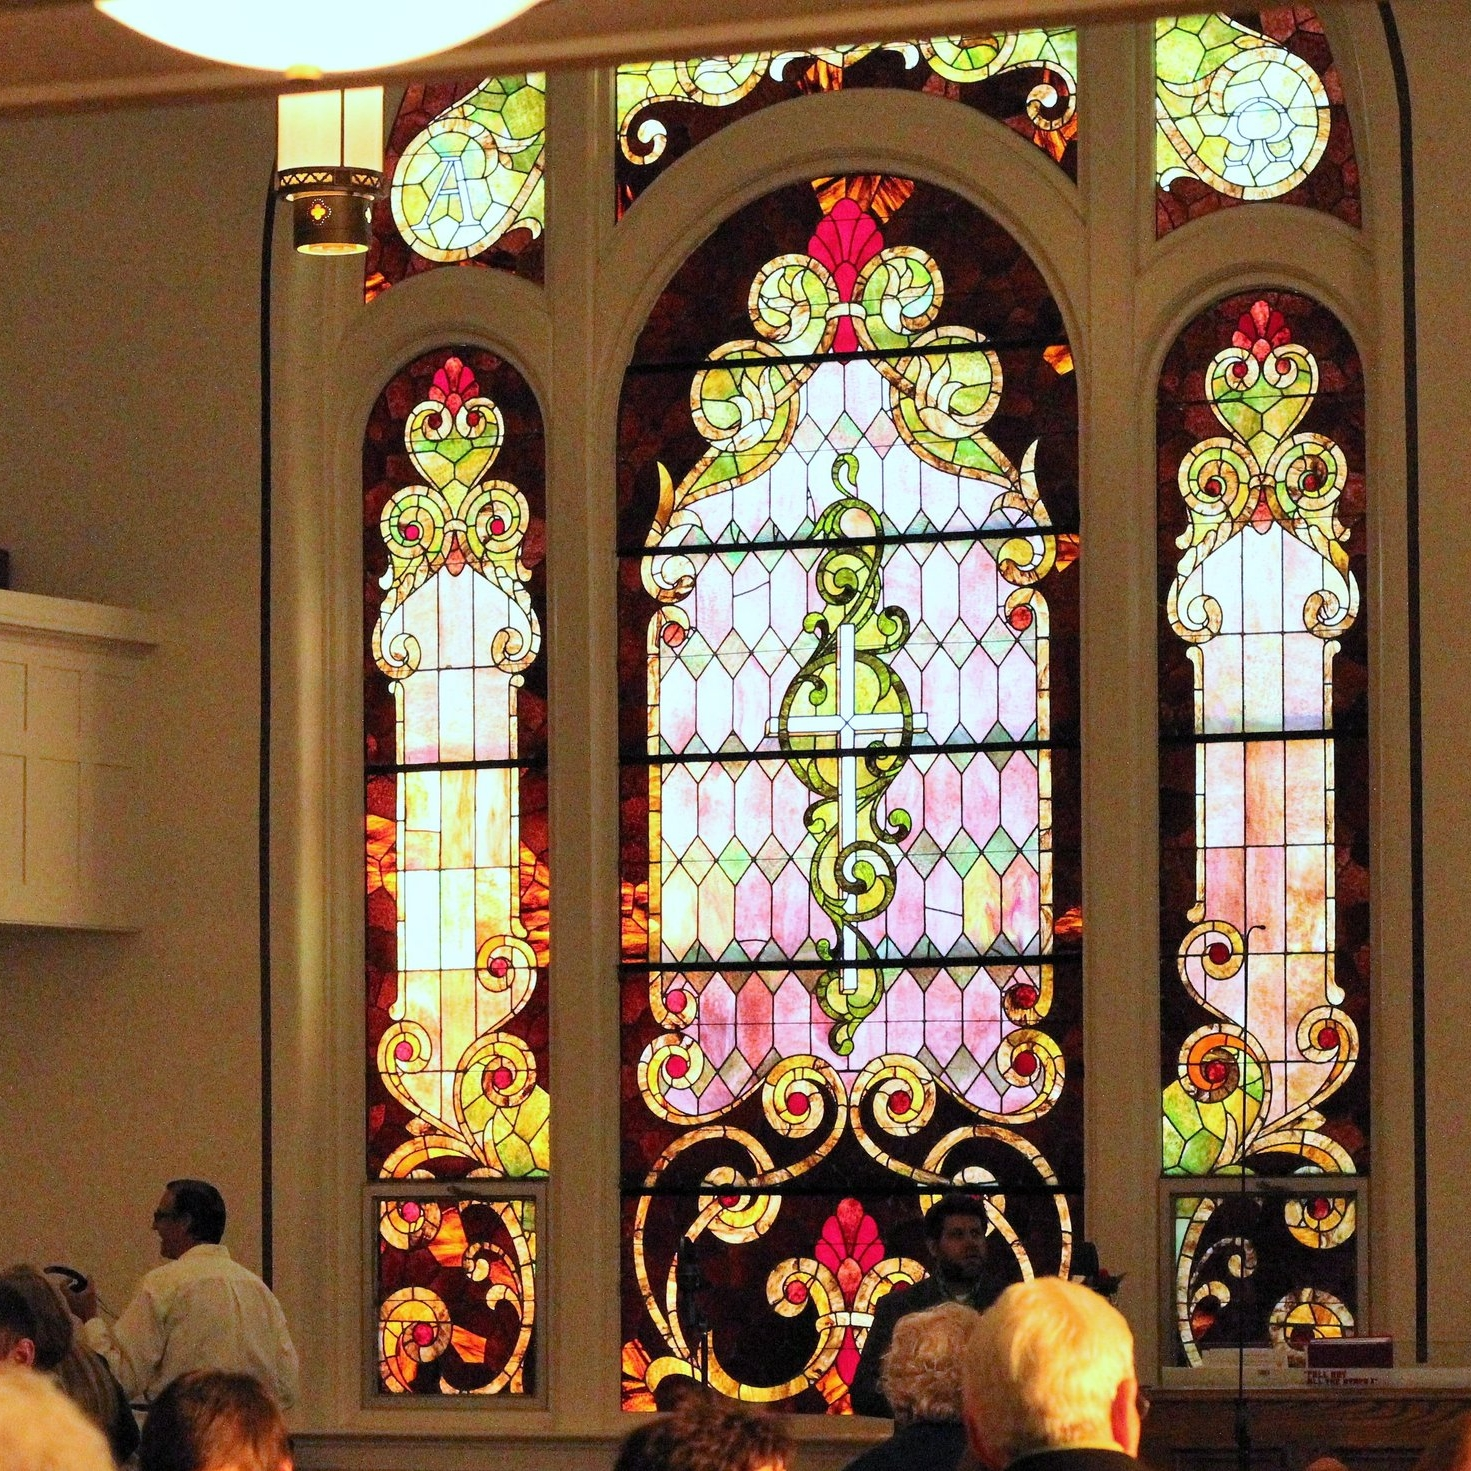 Interested in hearing more about who we are and what we're about here at First Presbyterian Church? We'd love to share more with you! Click this link to learn more about First Presbyterian Church.